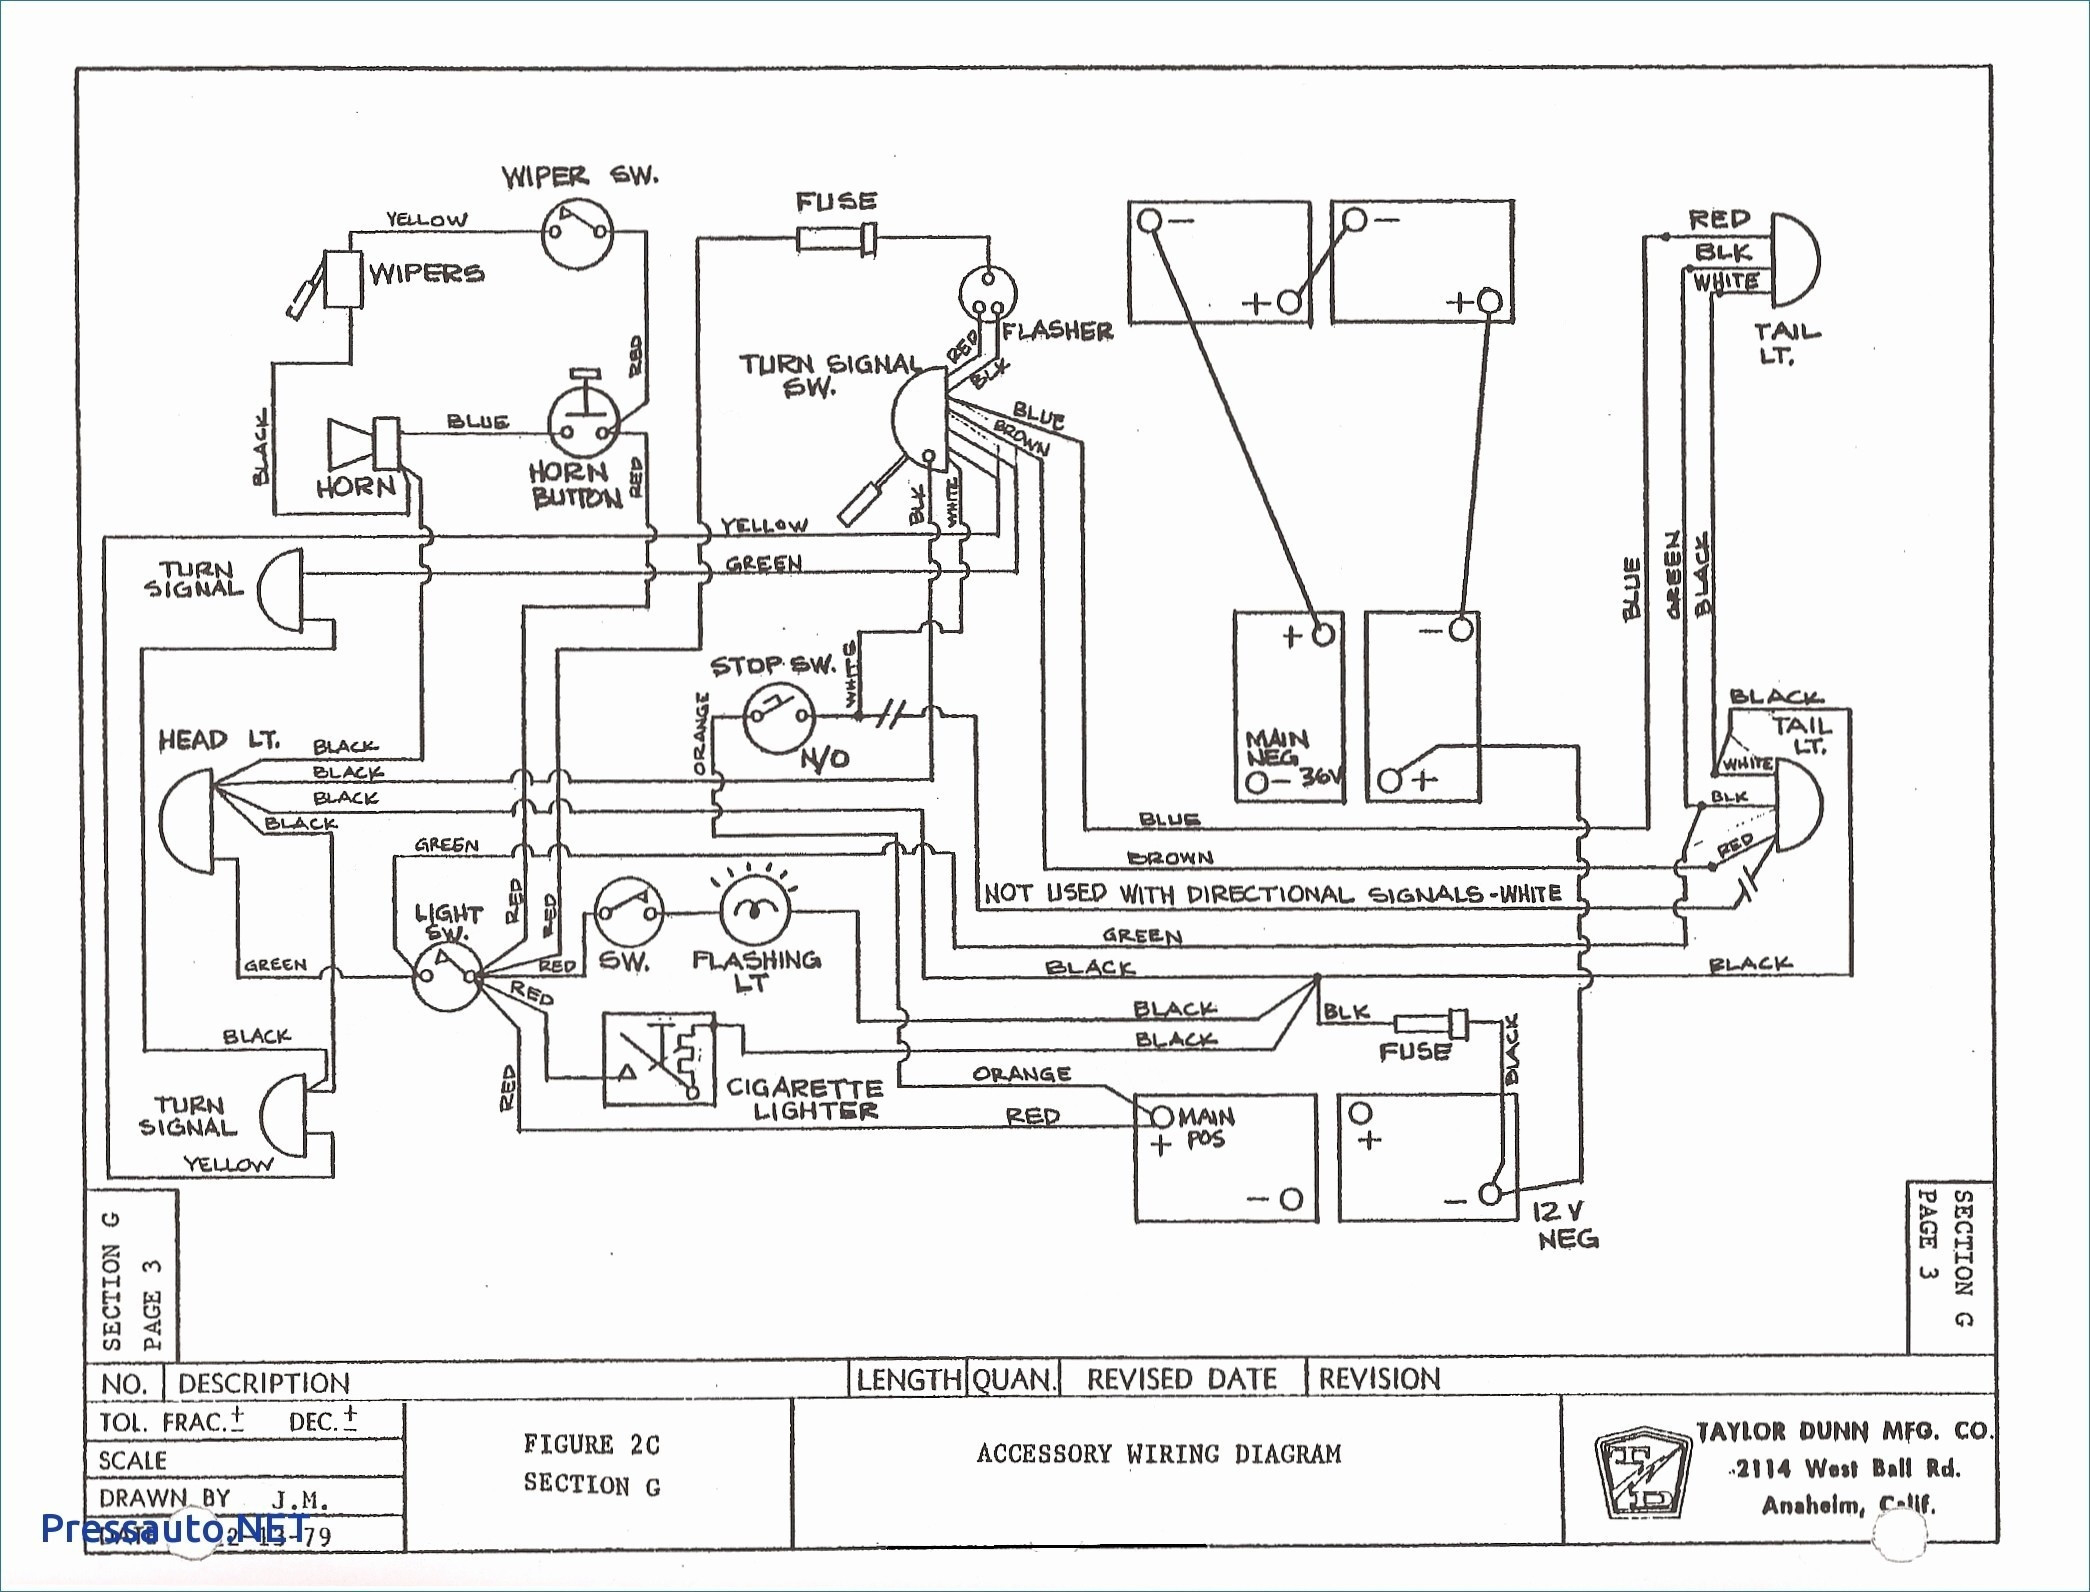 1995 Club Car Wiring Forward Reverse Diagram | Wiring Diagram - Club Car Forward Reverse Switch Wiring Diagram